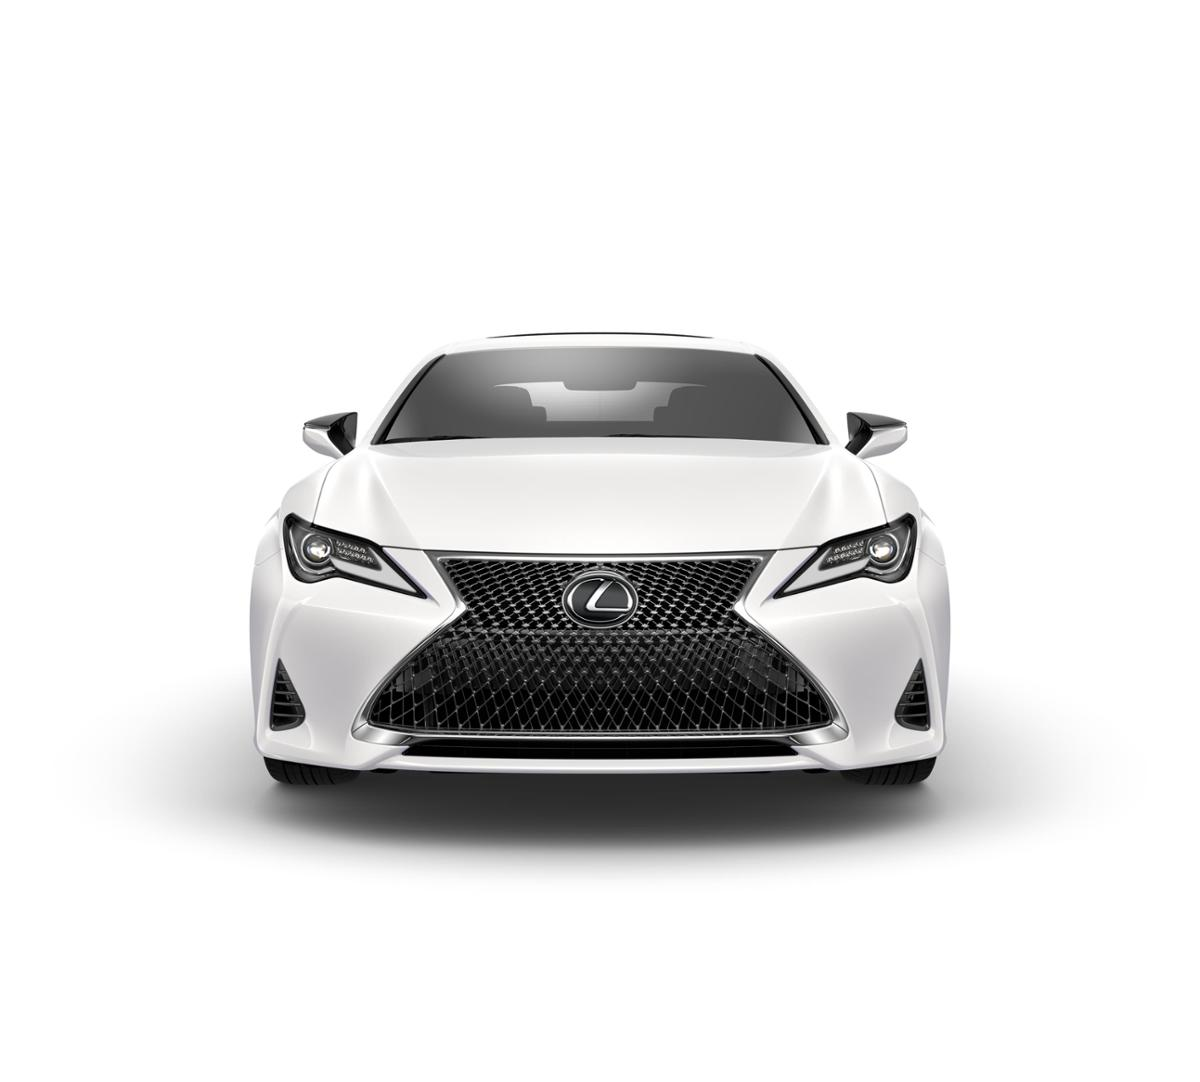 2019 Lexus RC 300 Vehicle Photo in Santa Monica, CA 90404